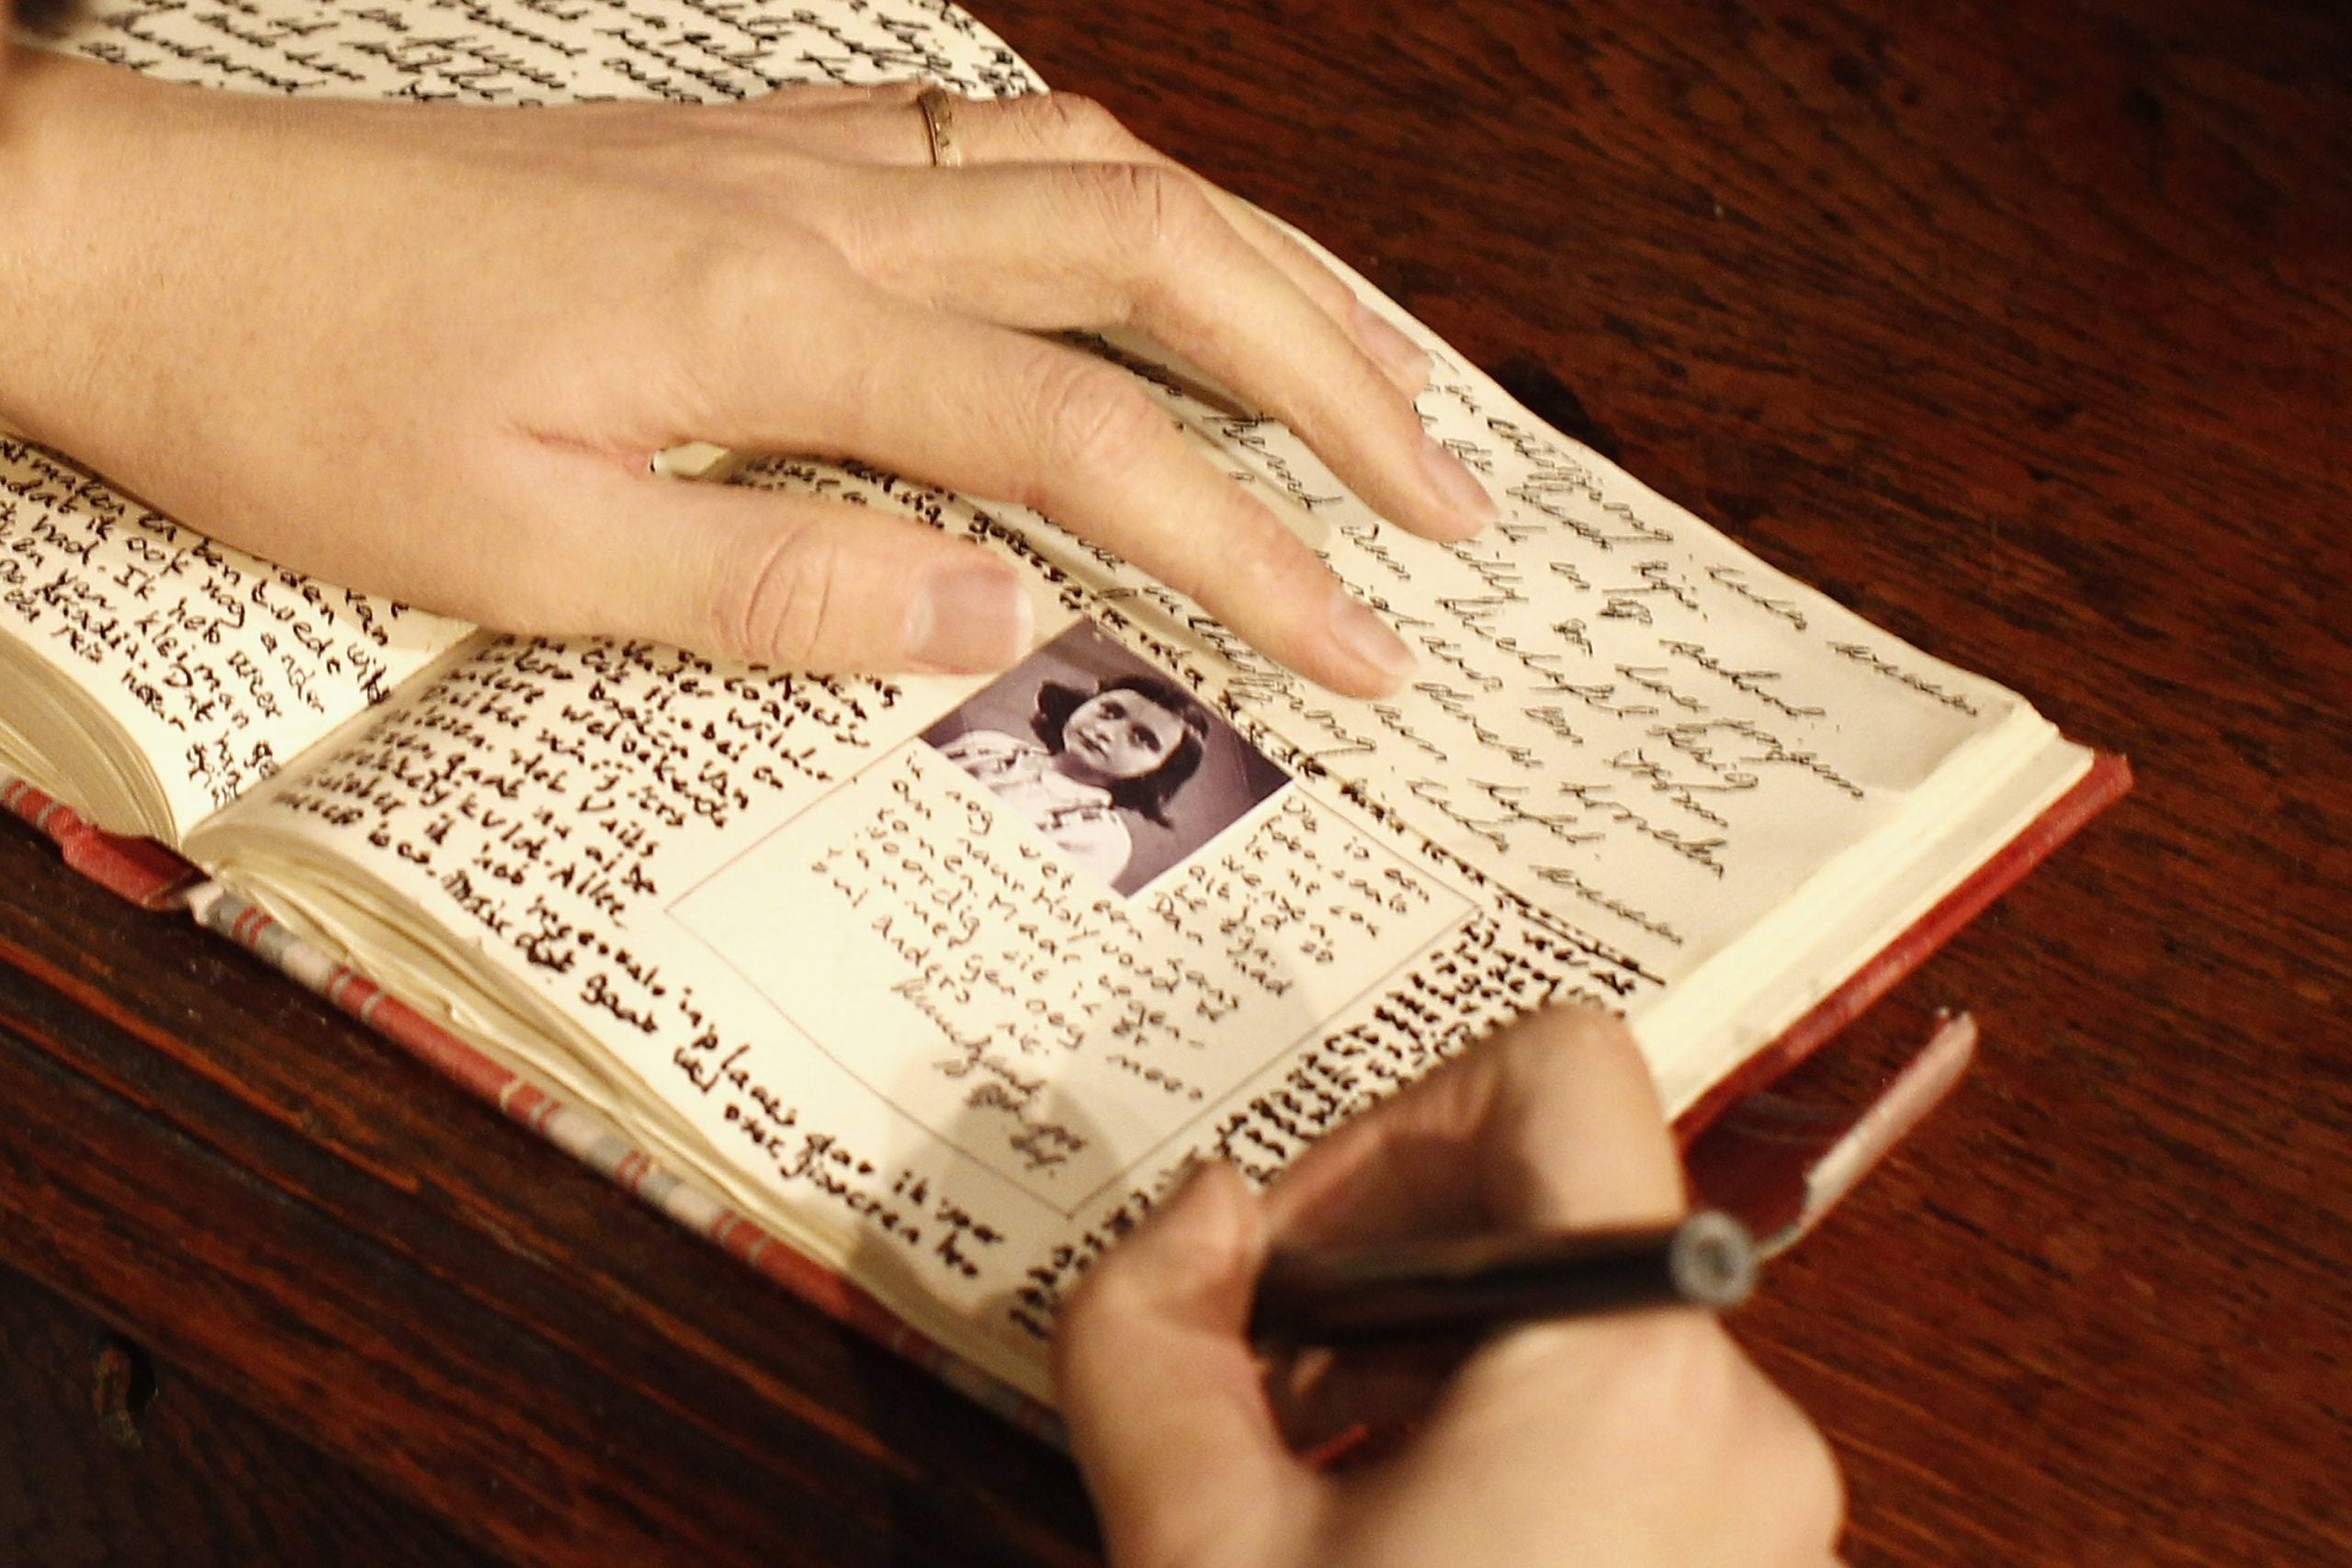 A new reading of Anne Frank's diary is urgent and moving